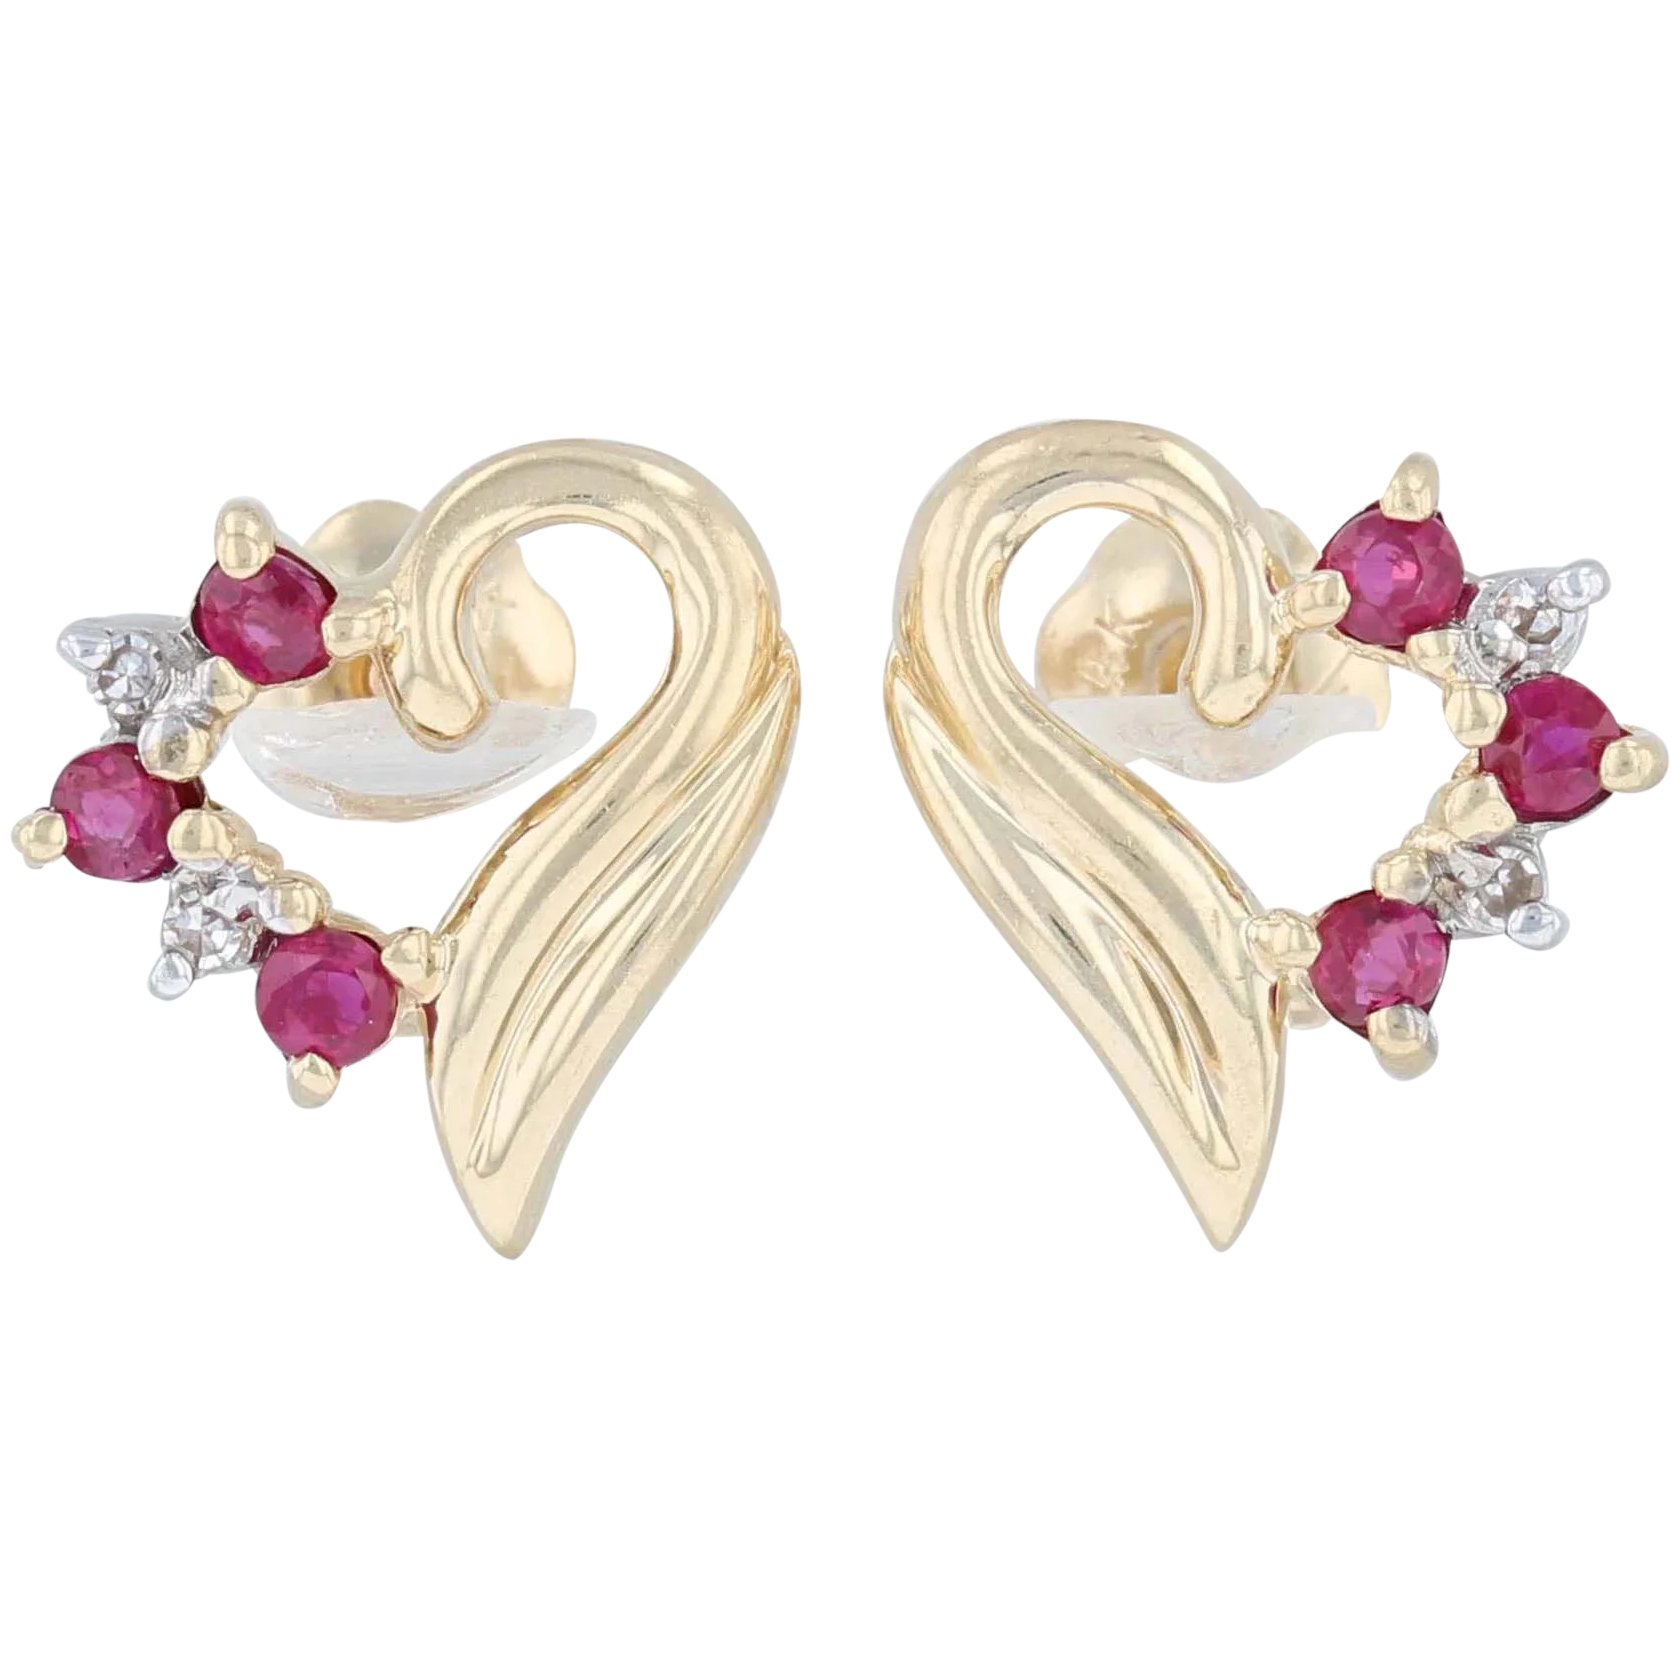 Solid 14k Gold Hooks and Ardent Red Topaz of 39 Carats Earrings